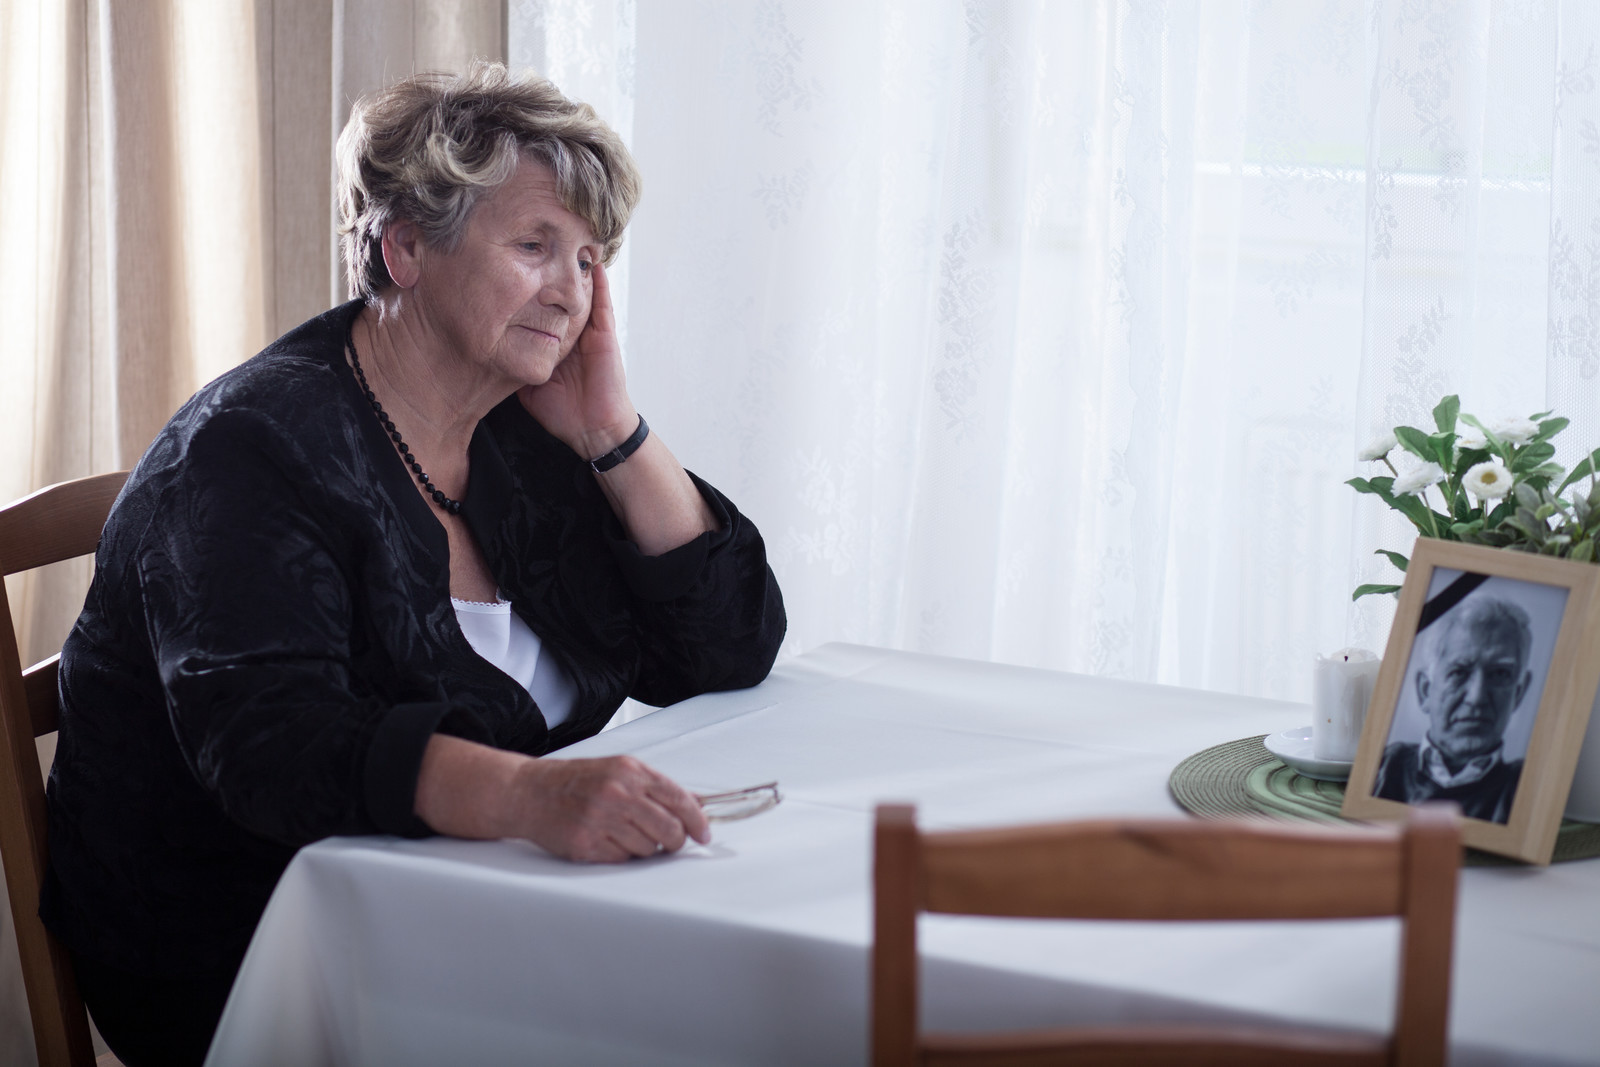 Senior woman sitting at her kitchen table looking at dead husband's picture  white curtains in the background and white tablecloth